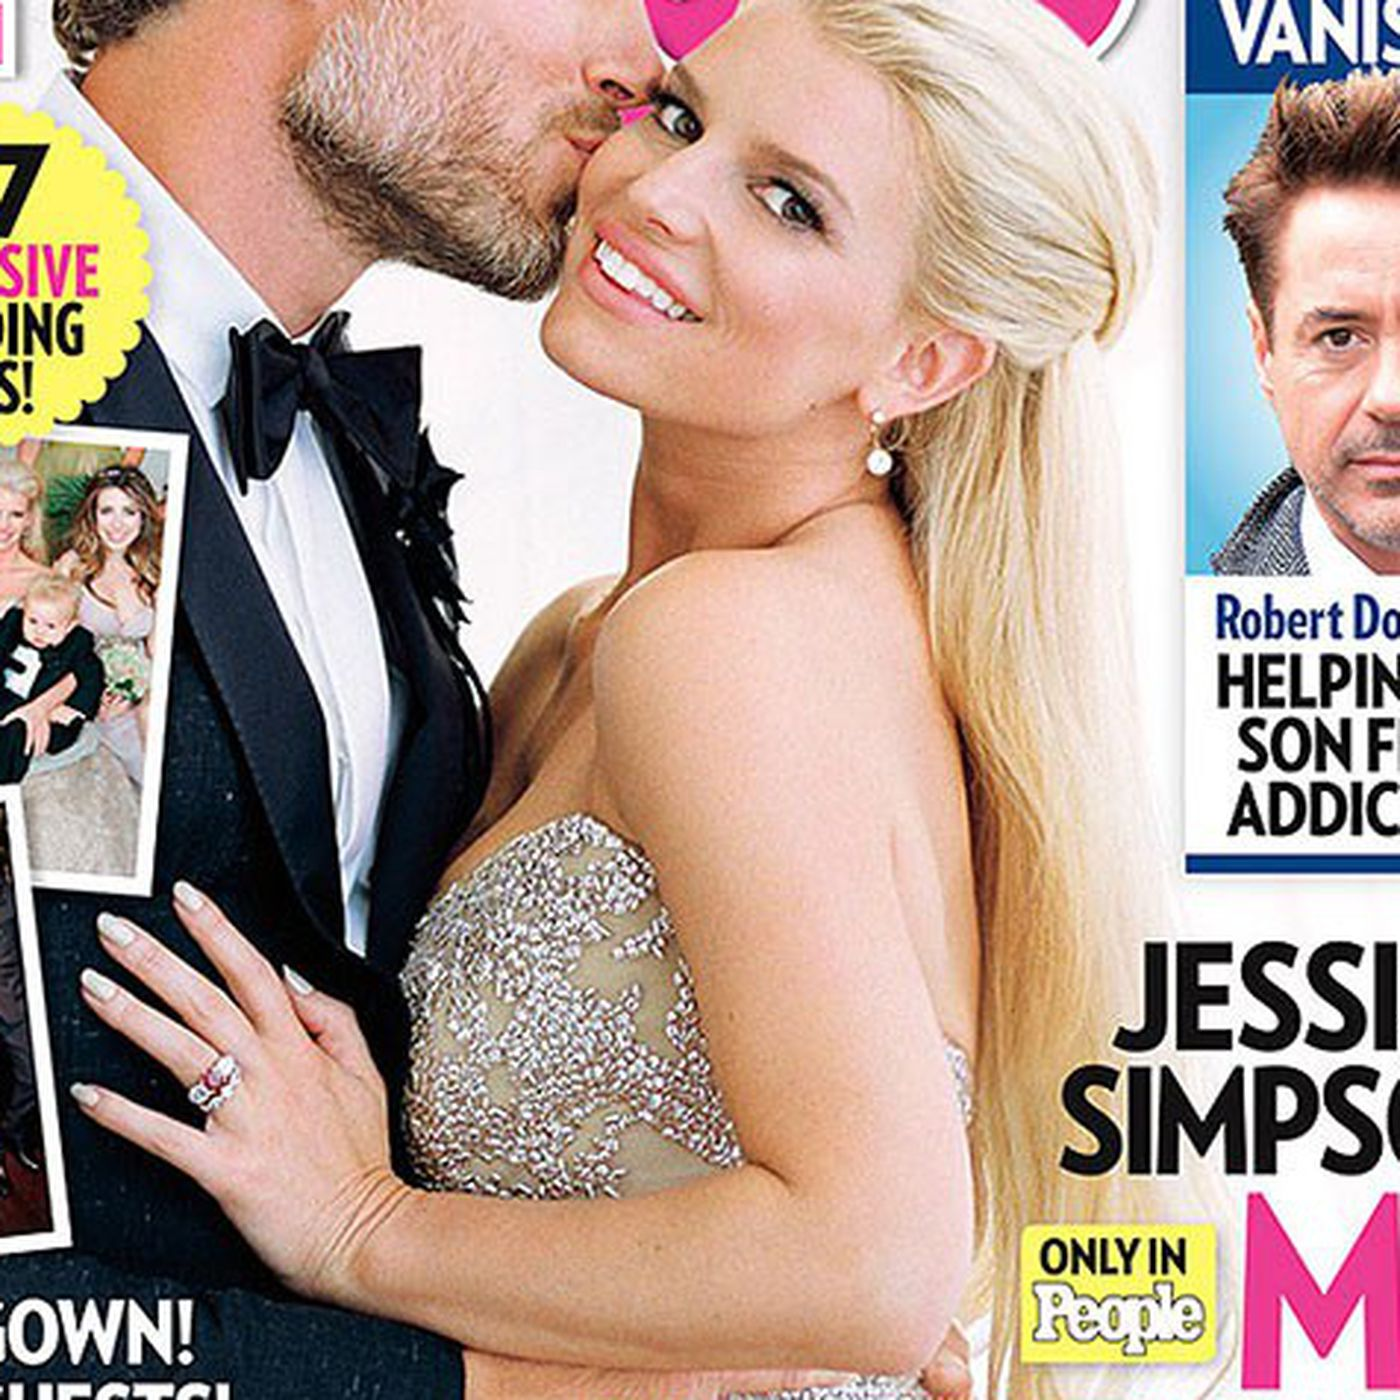 Heres Jessica Simpsons Wedding Dress If You Care Racked